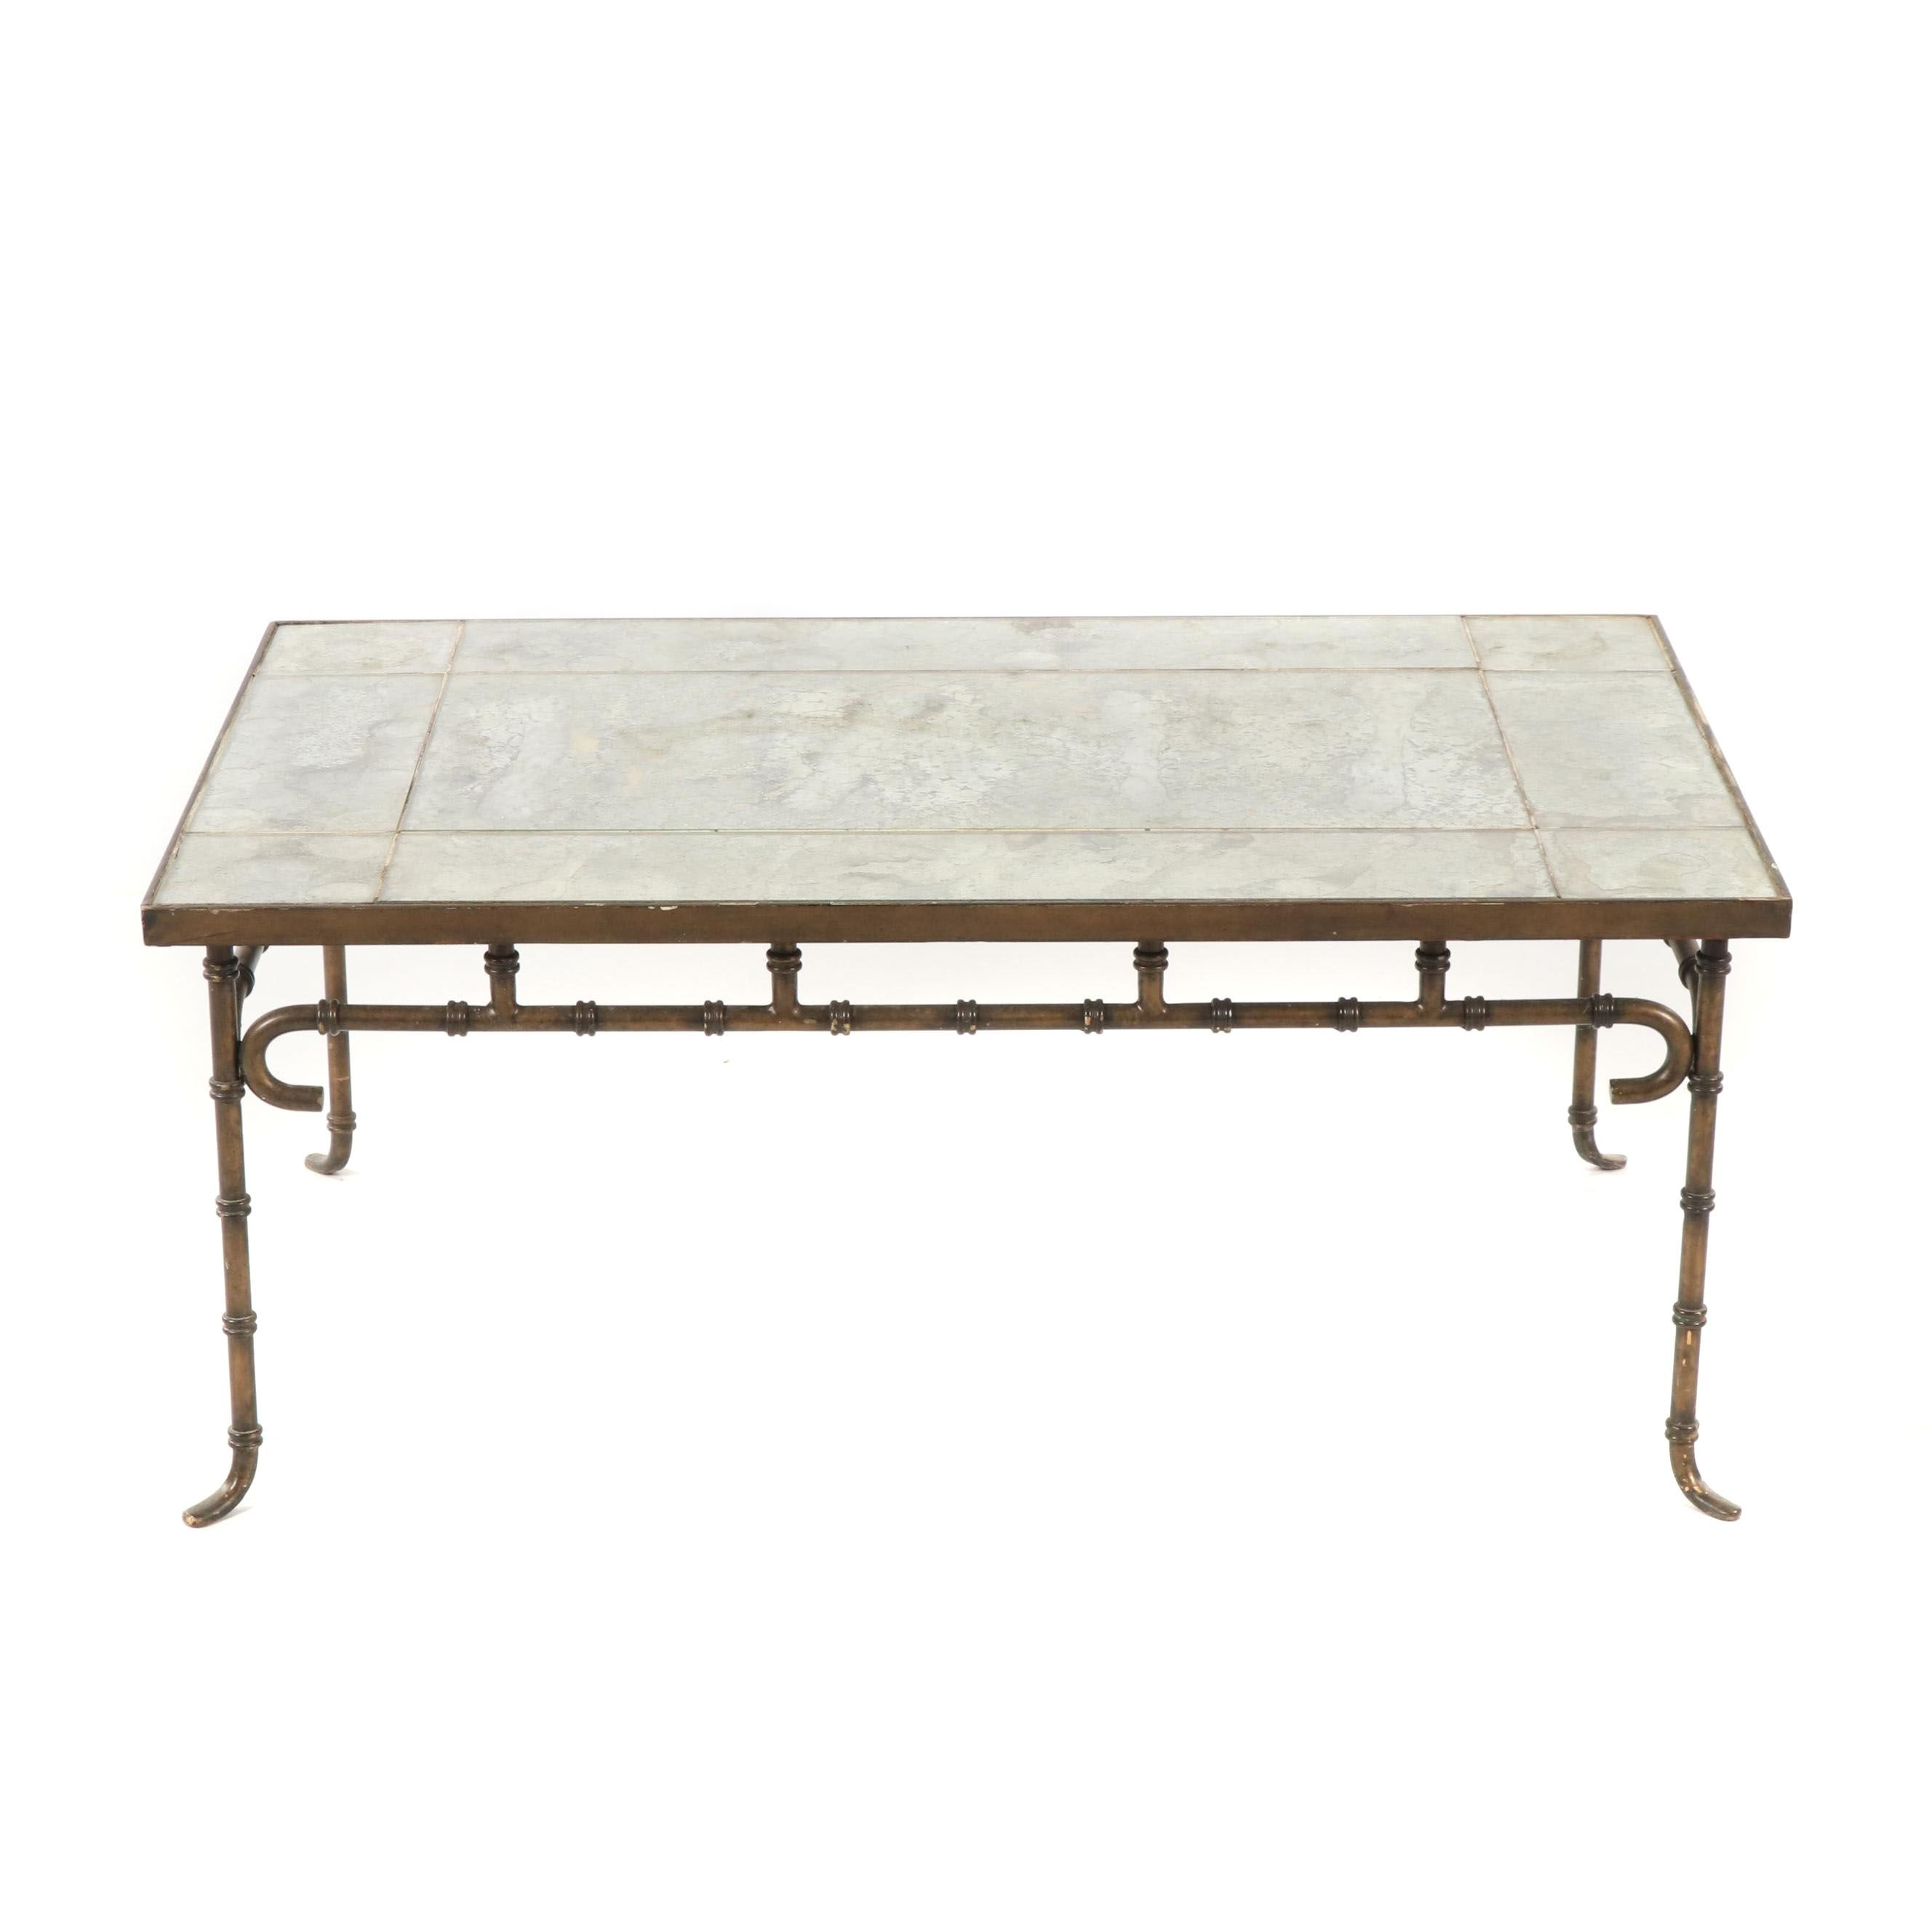 Metal and Glass Coffee Table, Late 20th Century